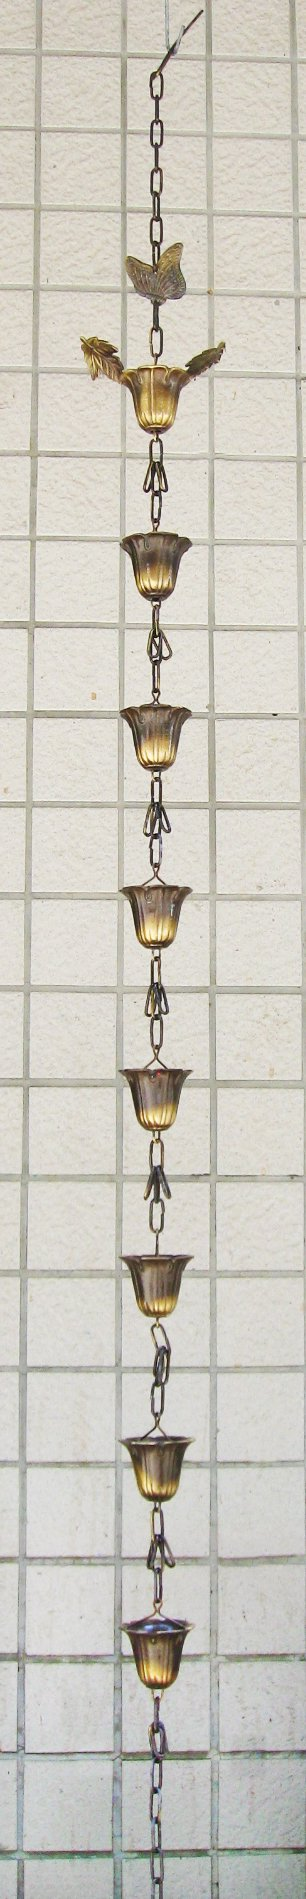 Brass Rain Chain with Butterfly & Maple Leaves